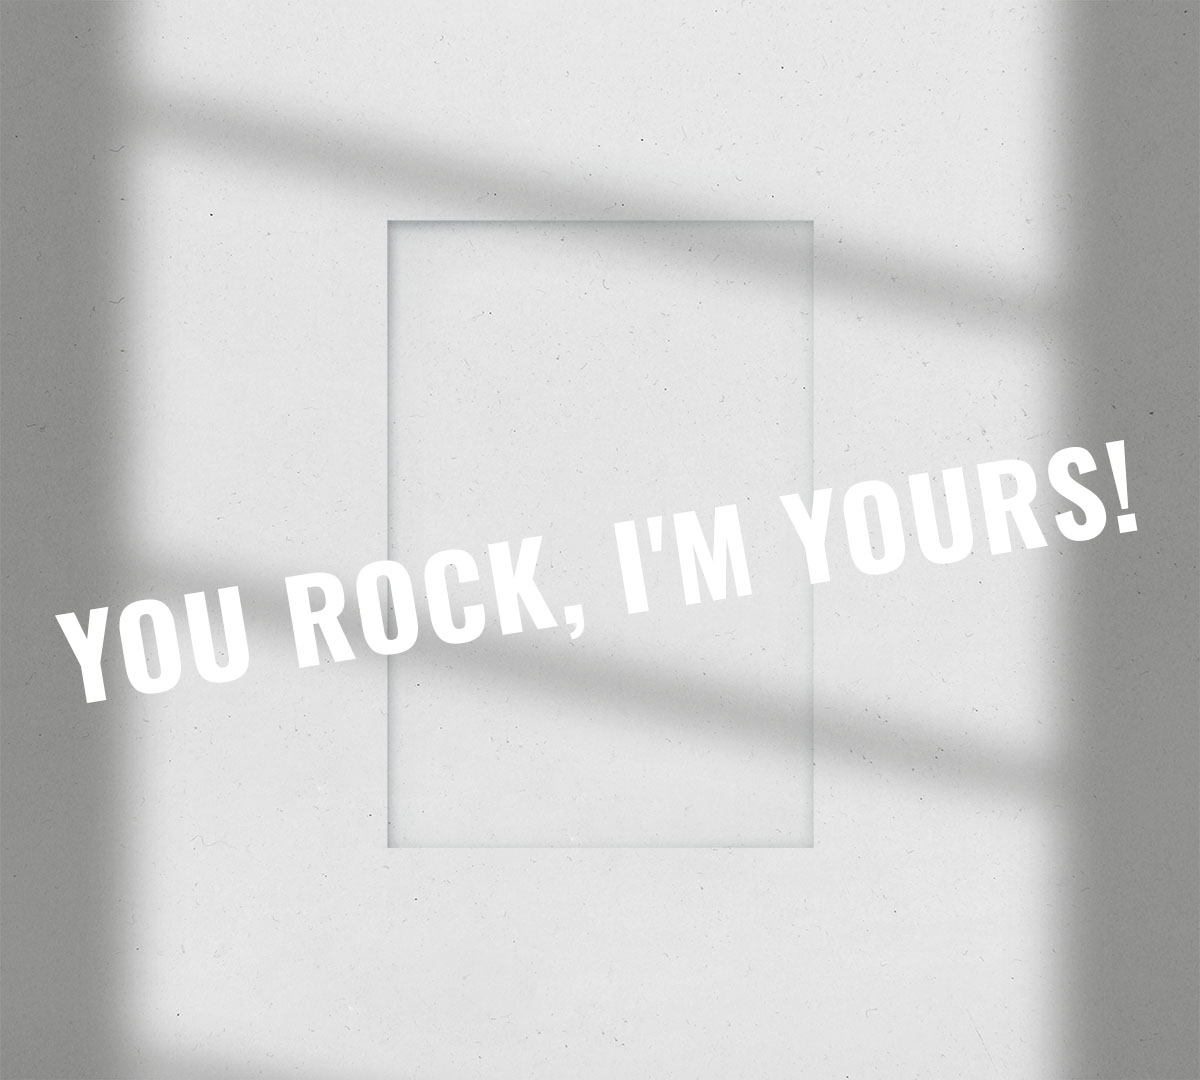 you rock Imyours